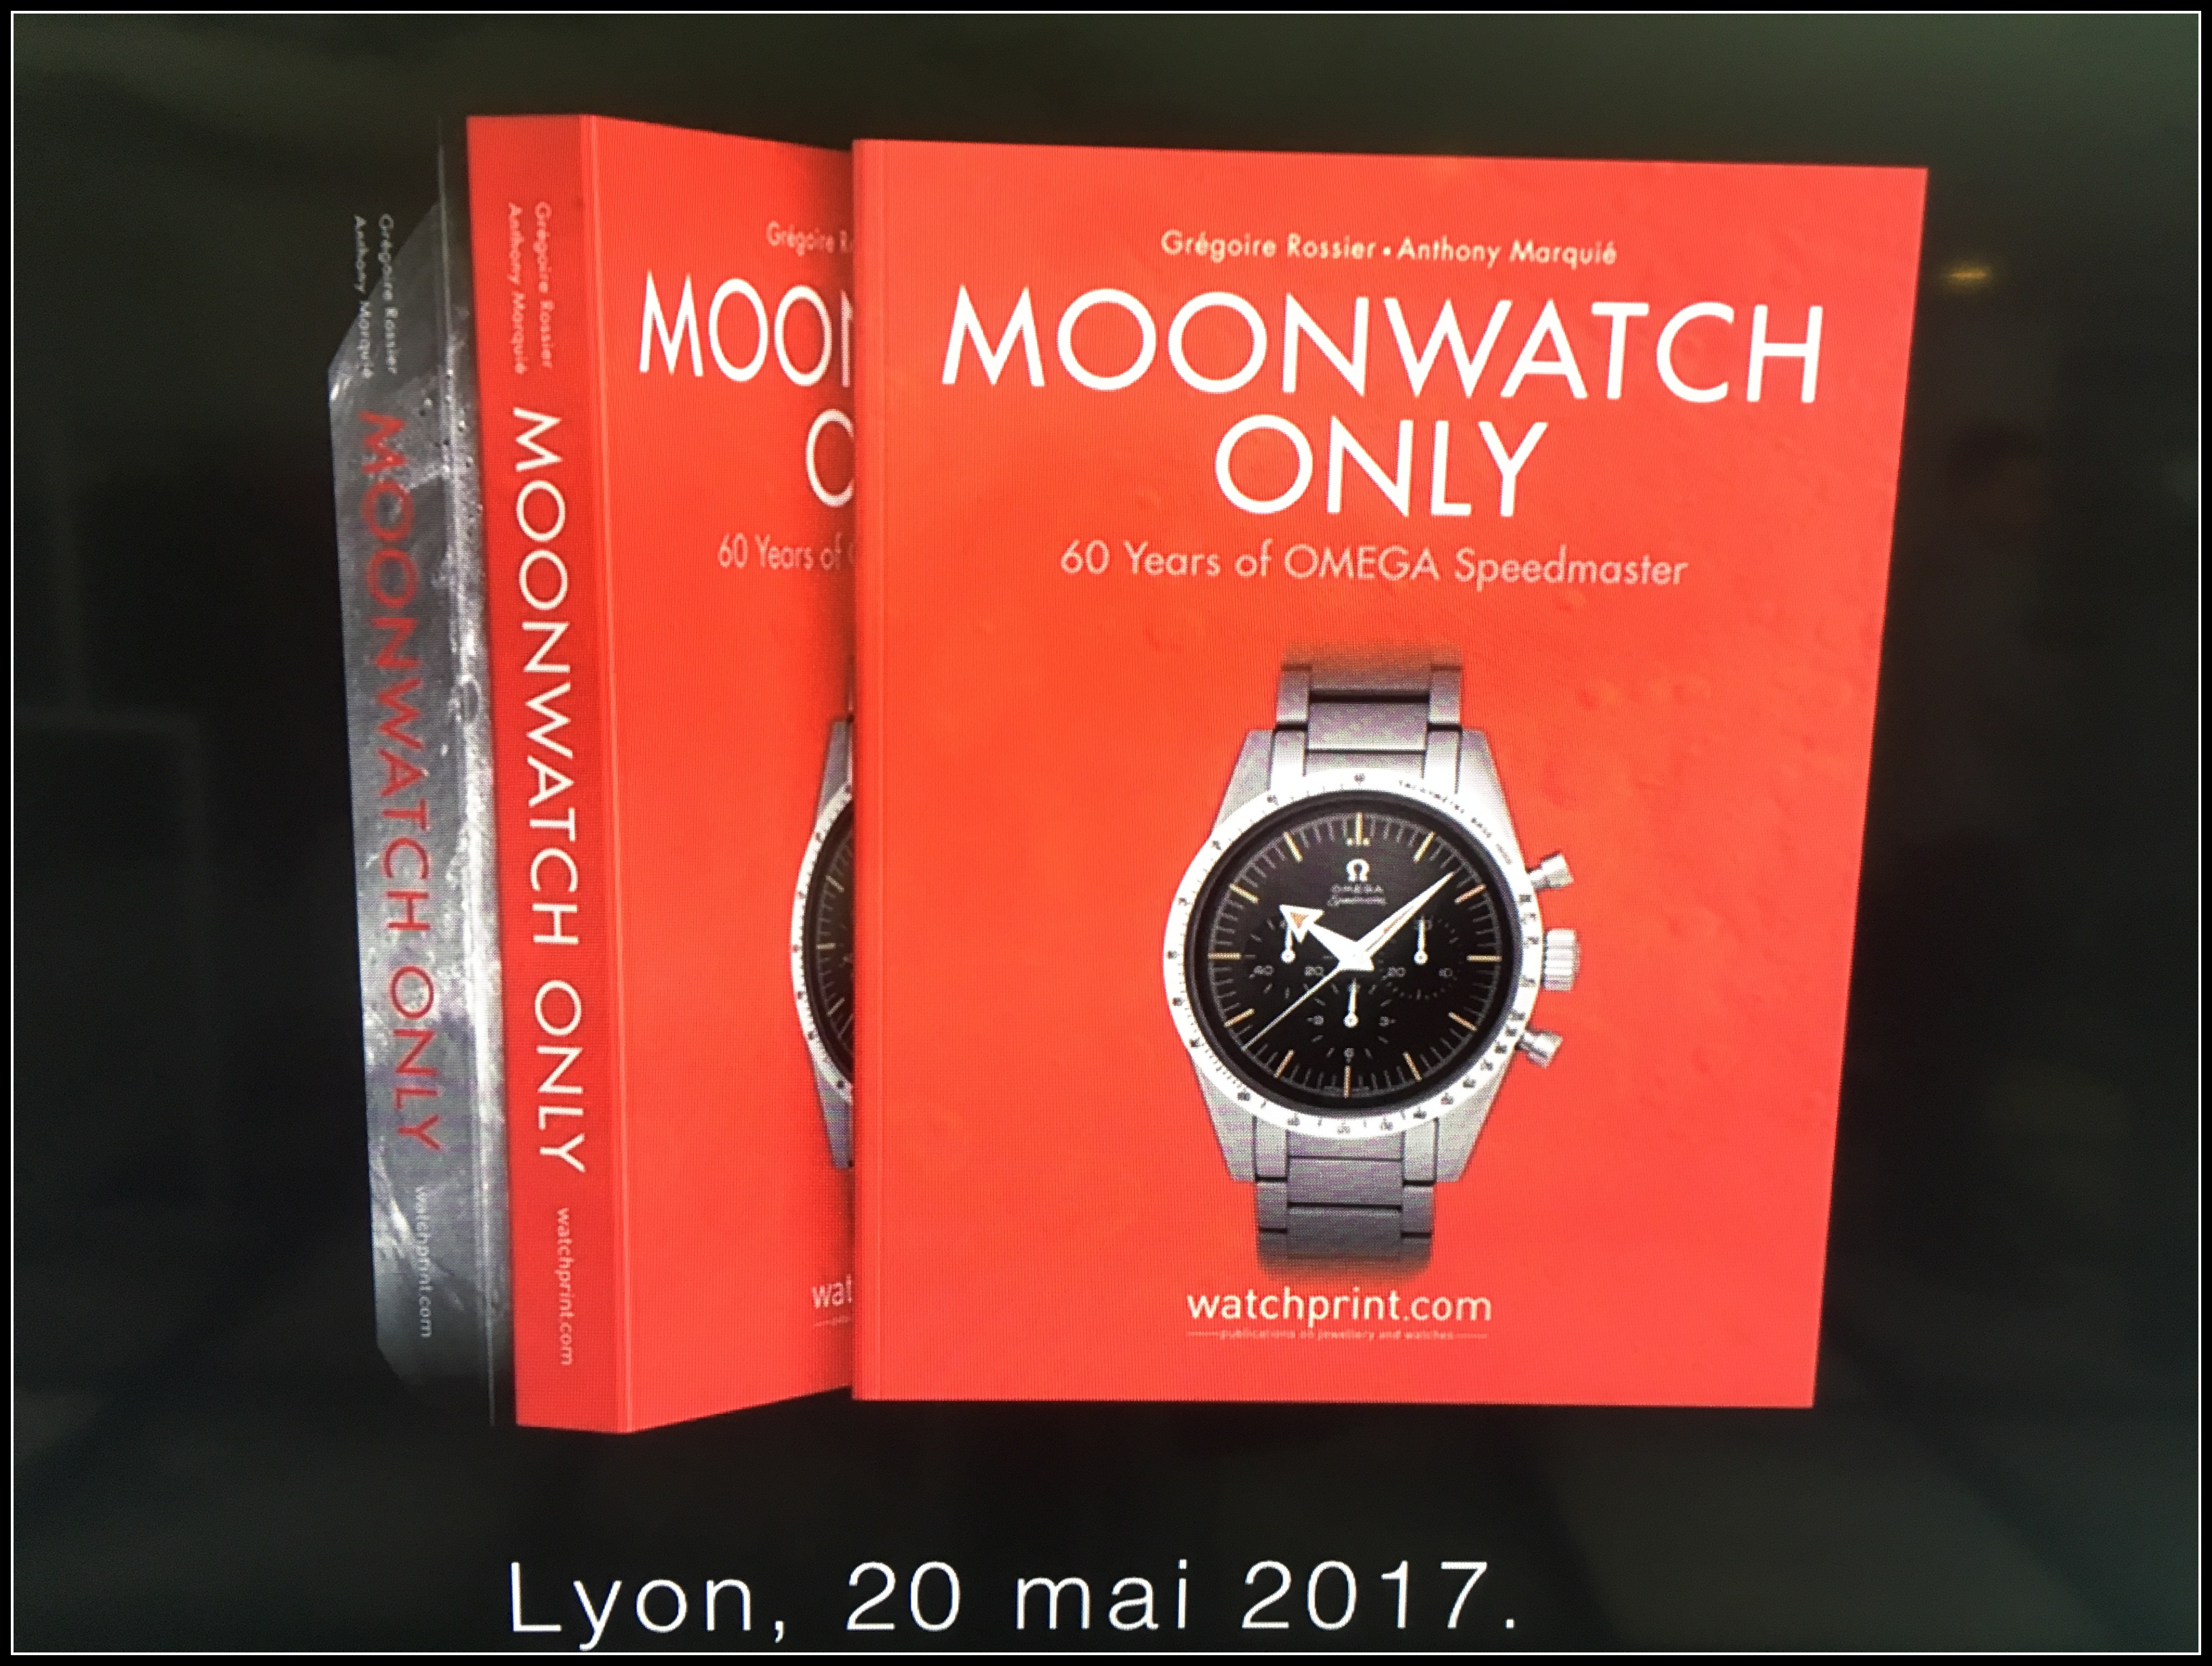 Journée MoonWatchOnly du 22 mai 2017